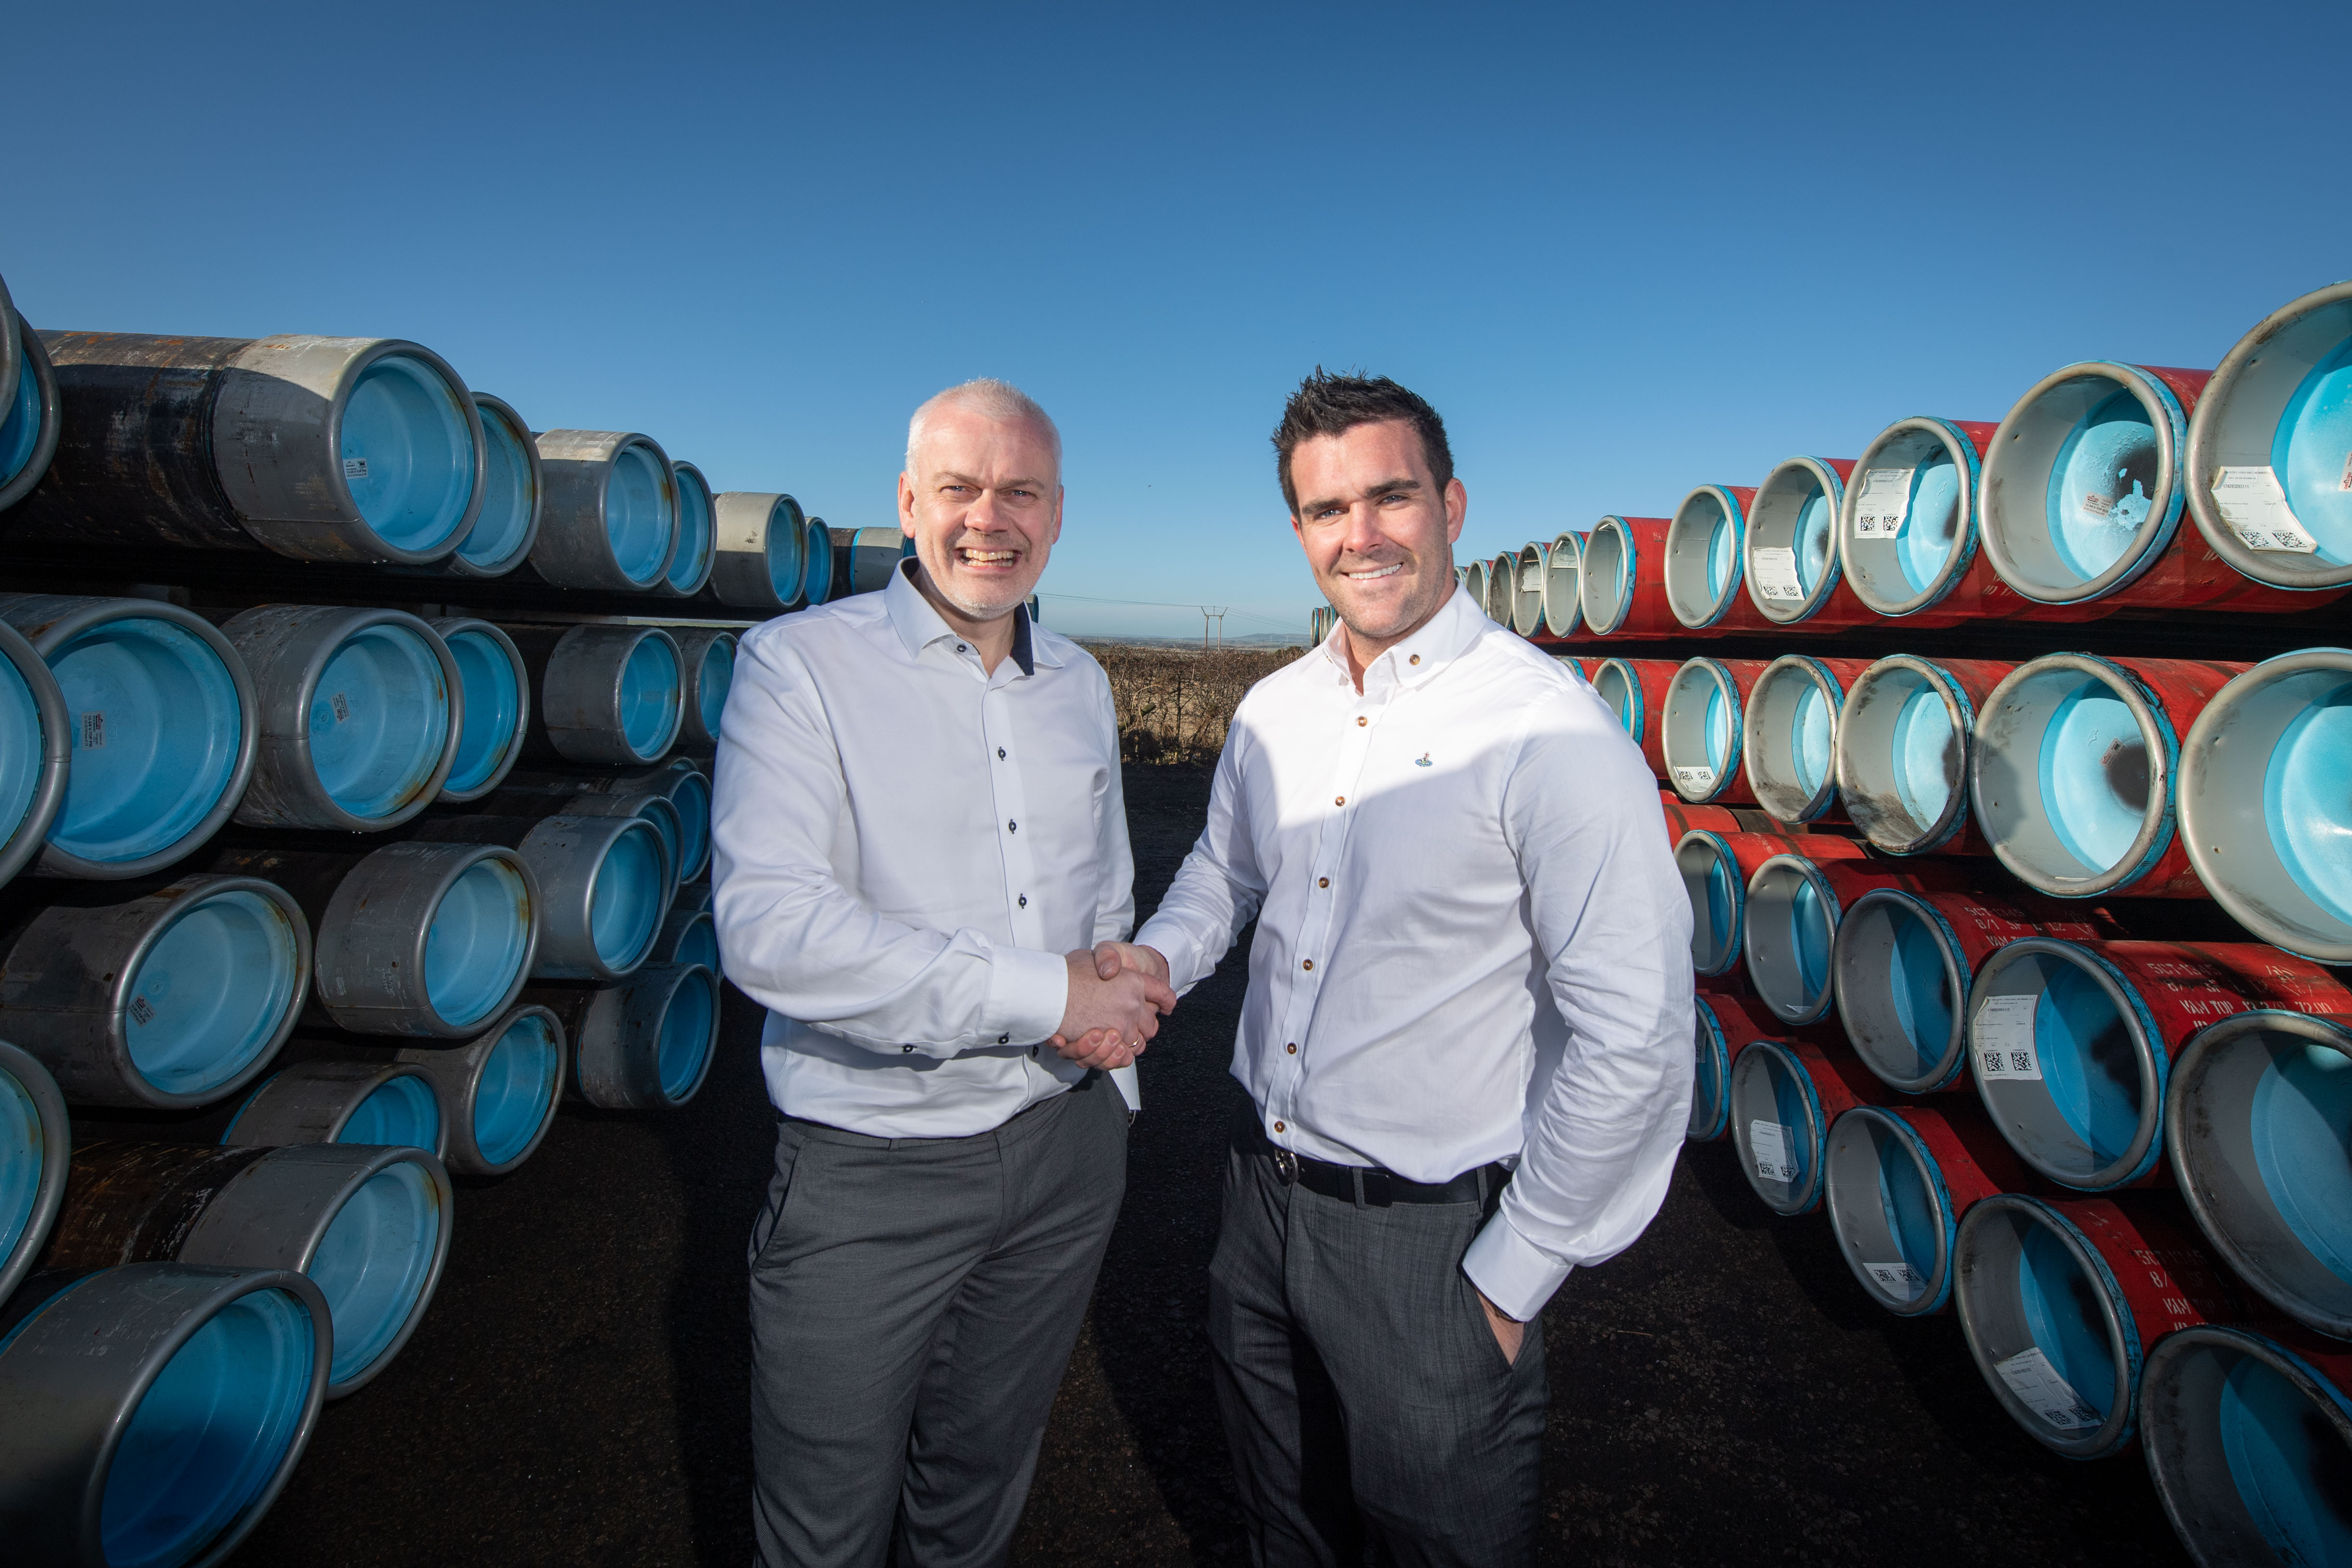 (L to R) of Rune Haddeland (CEO of Well Connection Group) and Glynn Geddie (MD of IOS).